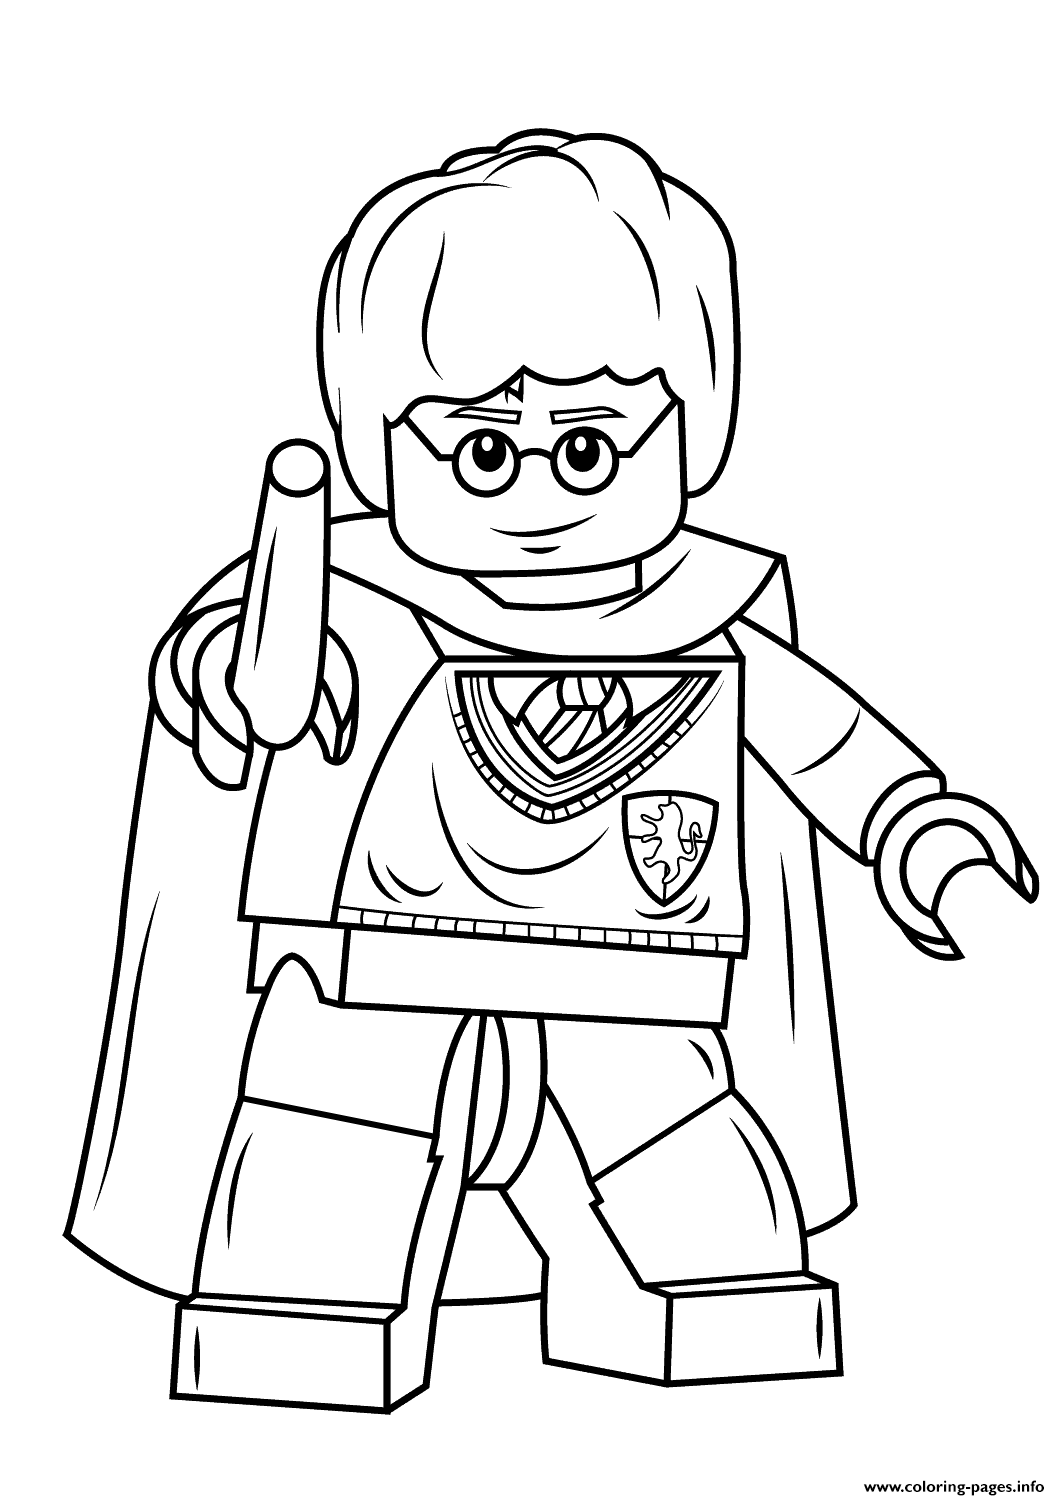 Lego Harry Potter With Wand Coloring